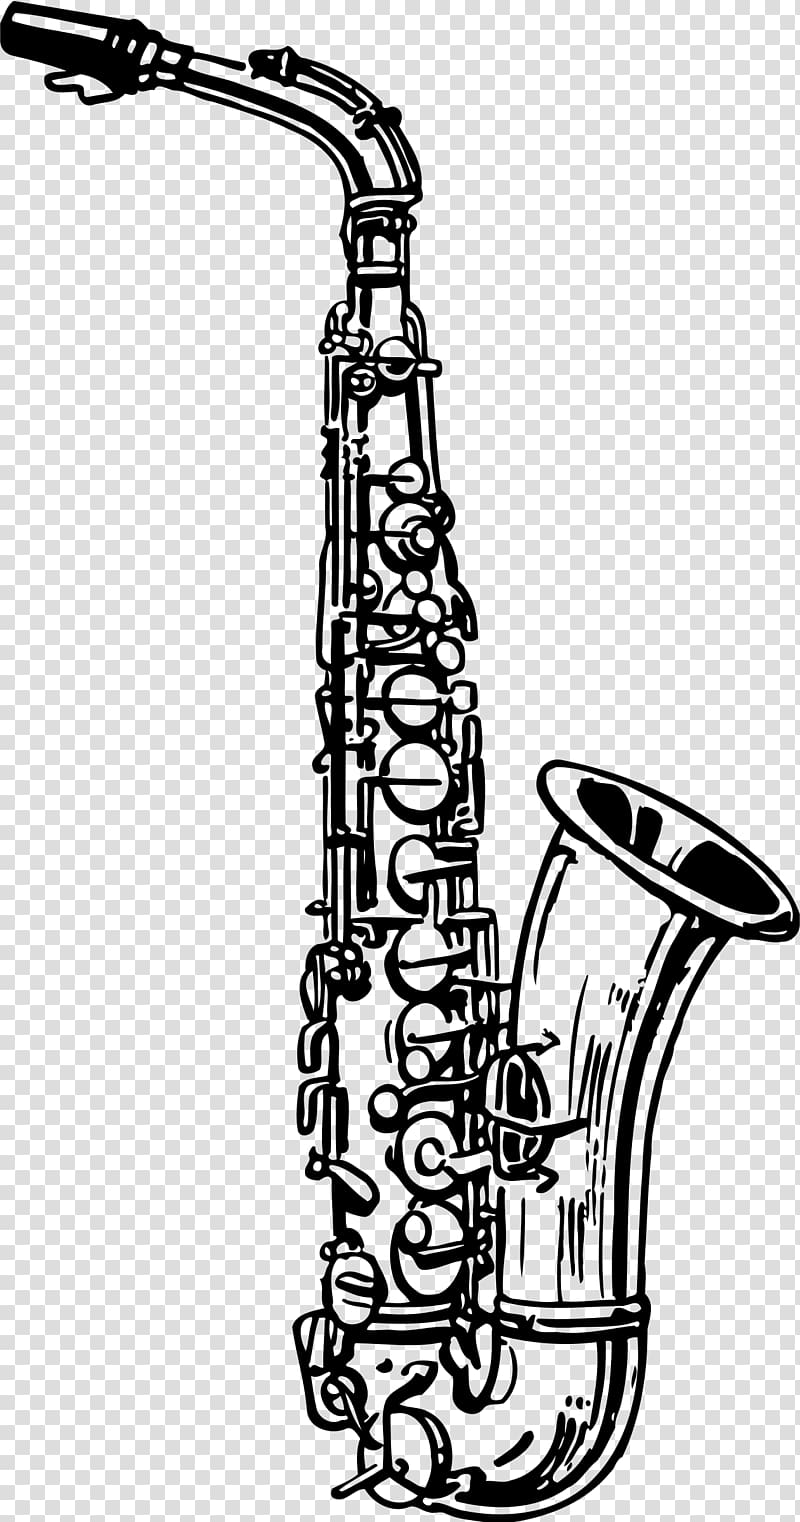 how to draw a saxophone easy pin by muse printables on printable patterns at easy a draw to how saxophone